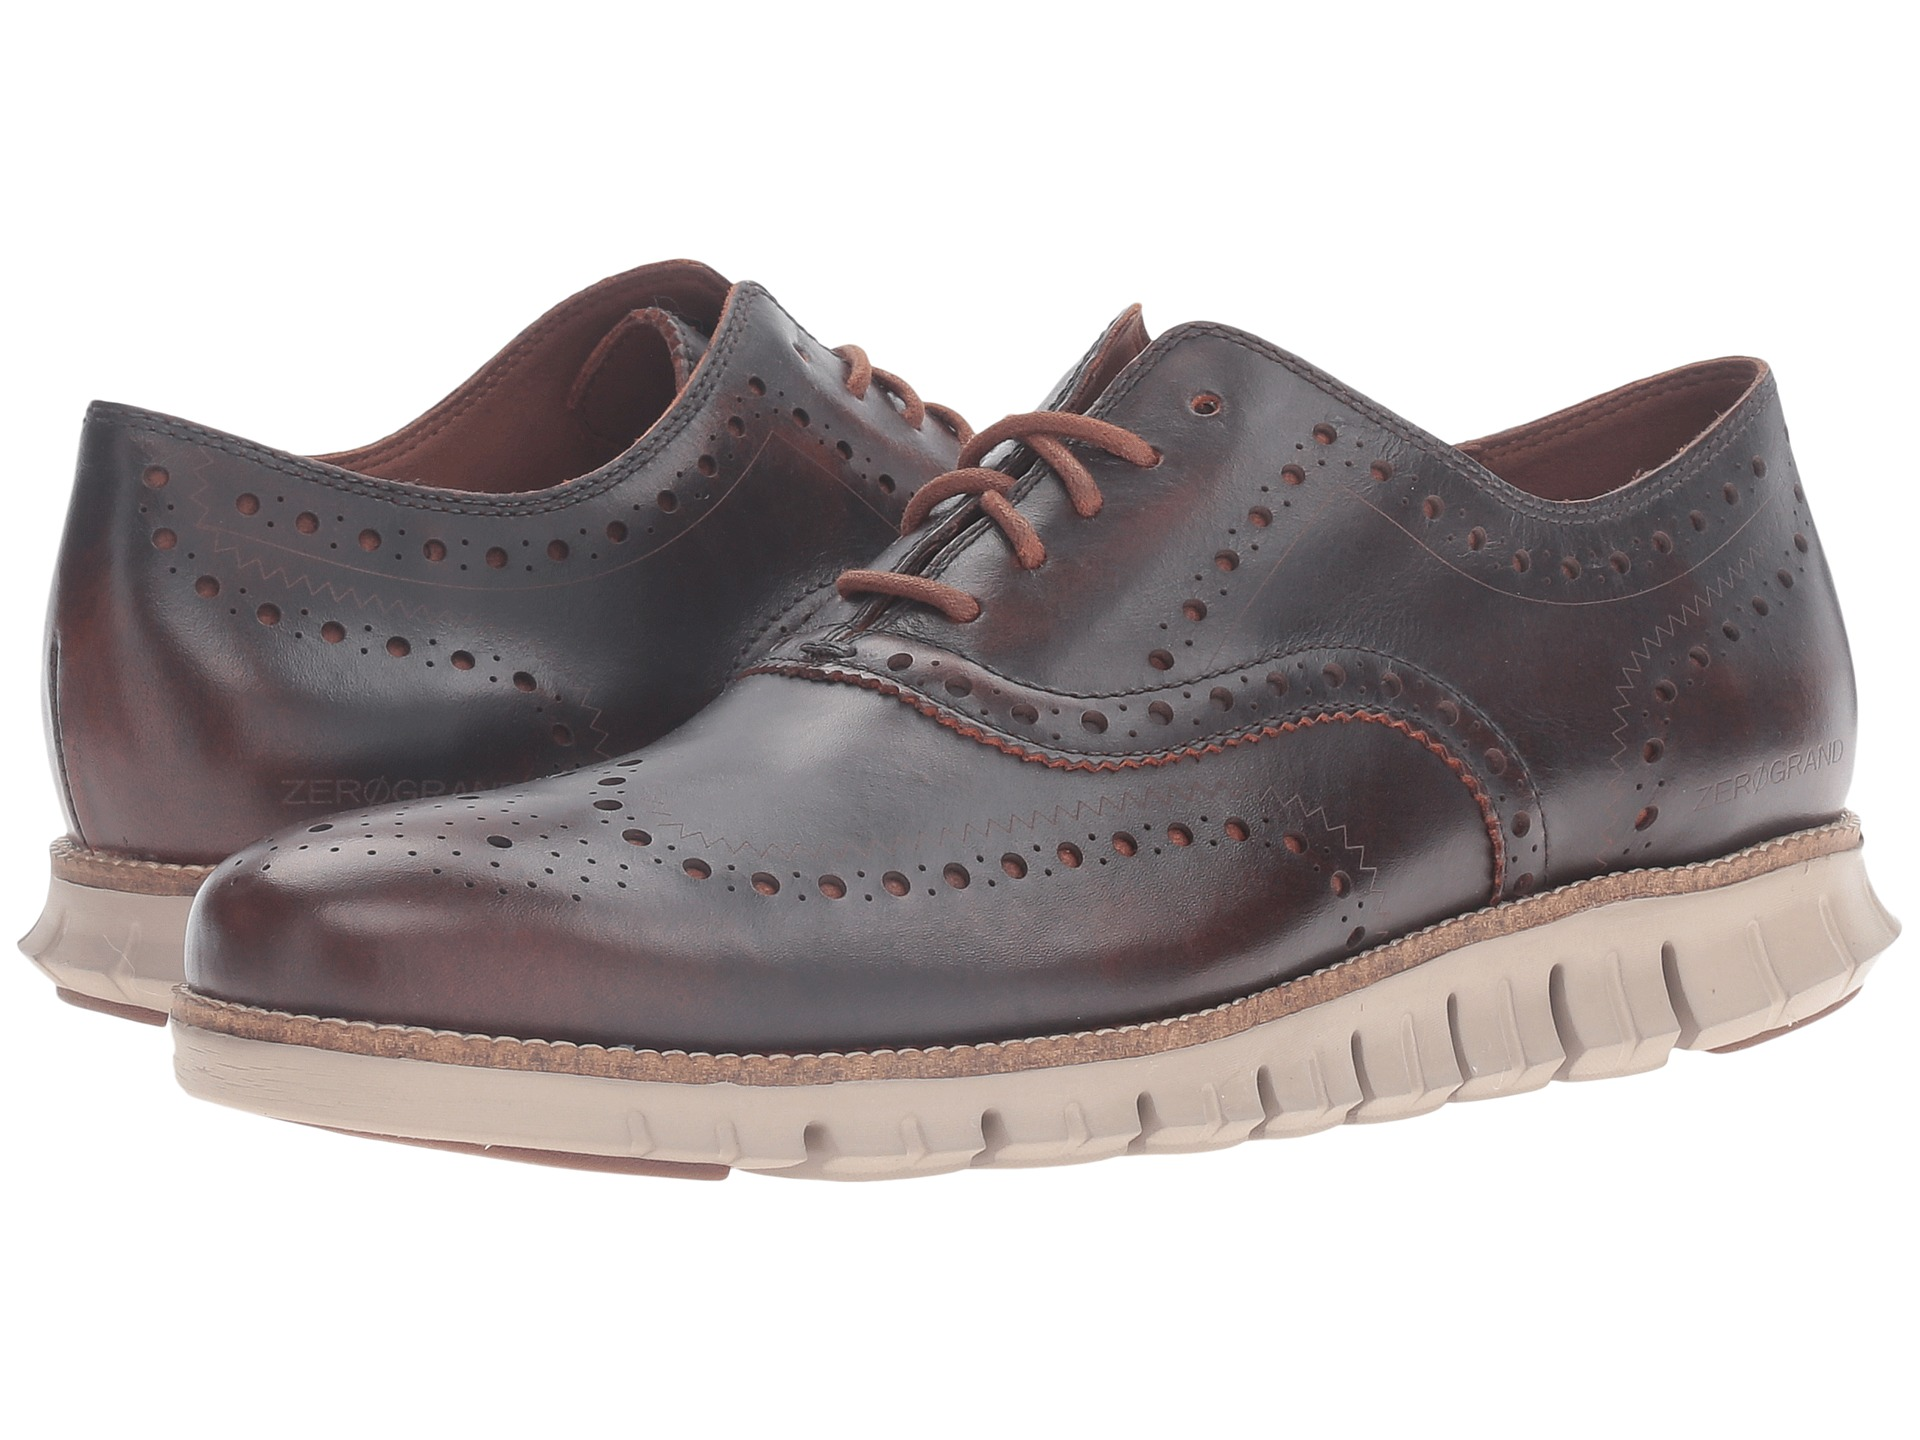 Cole Haan Zerogrand Wing Oxford Harvest Brown Leather Cobblestone